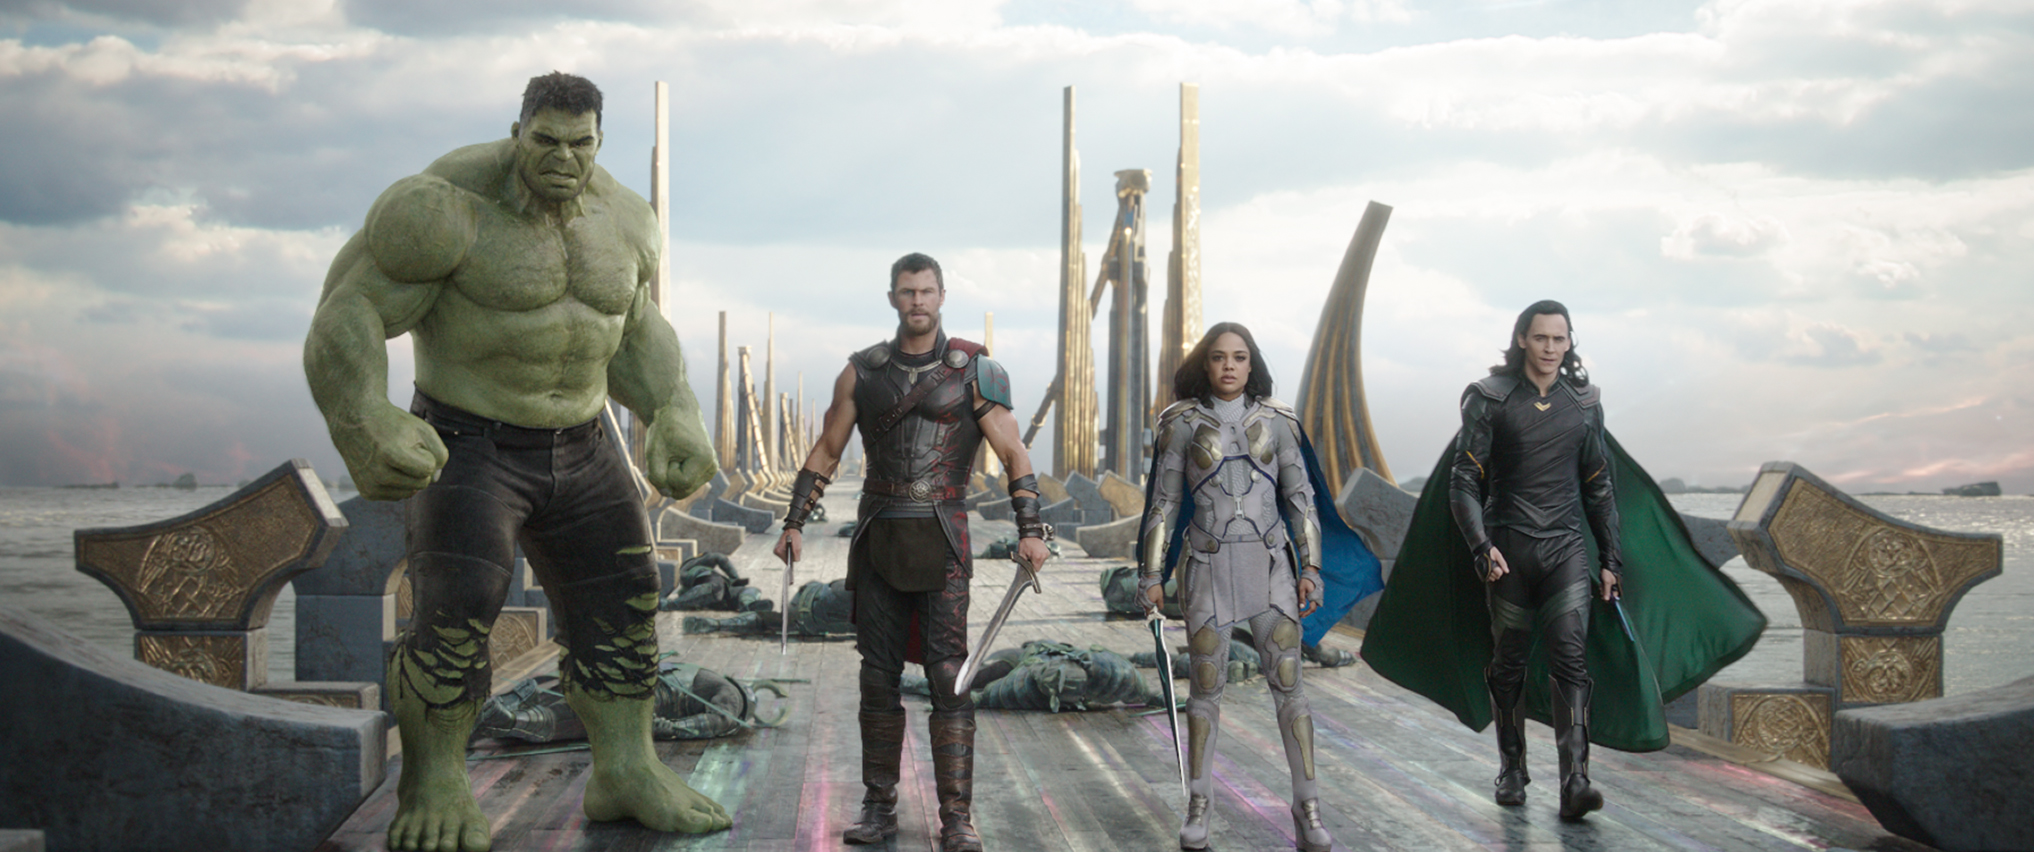 Giveaway THOR:Ragnarok Digital HD and 4K Ultra HD™ and